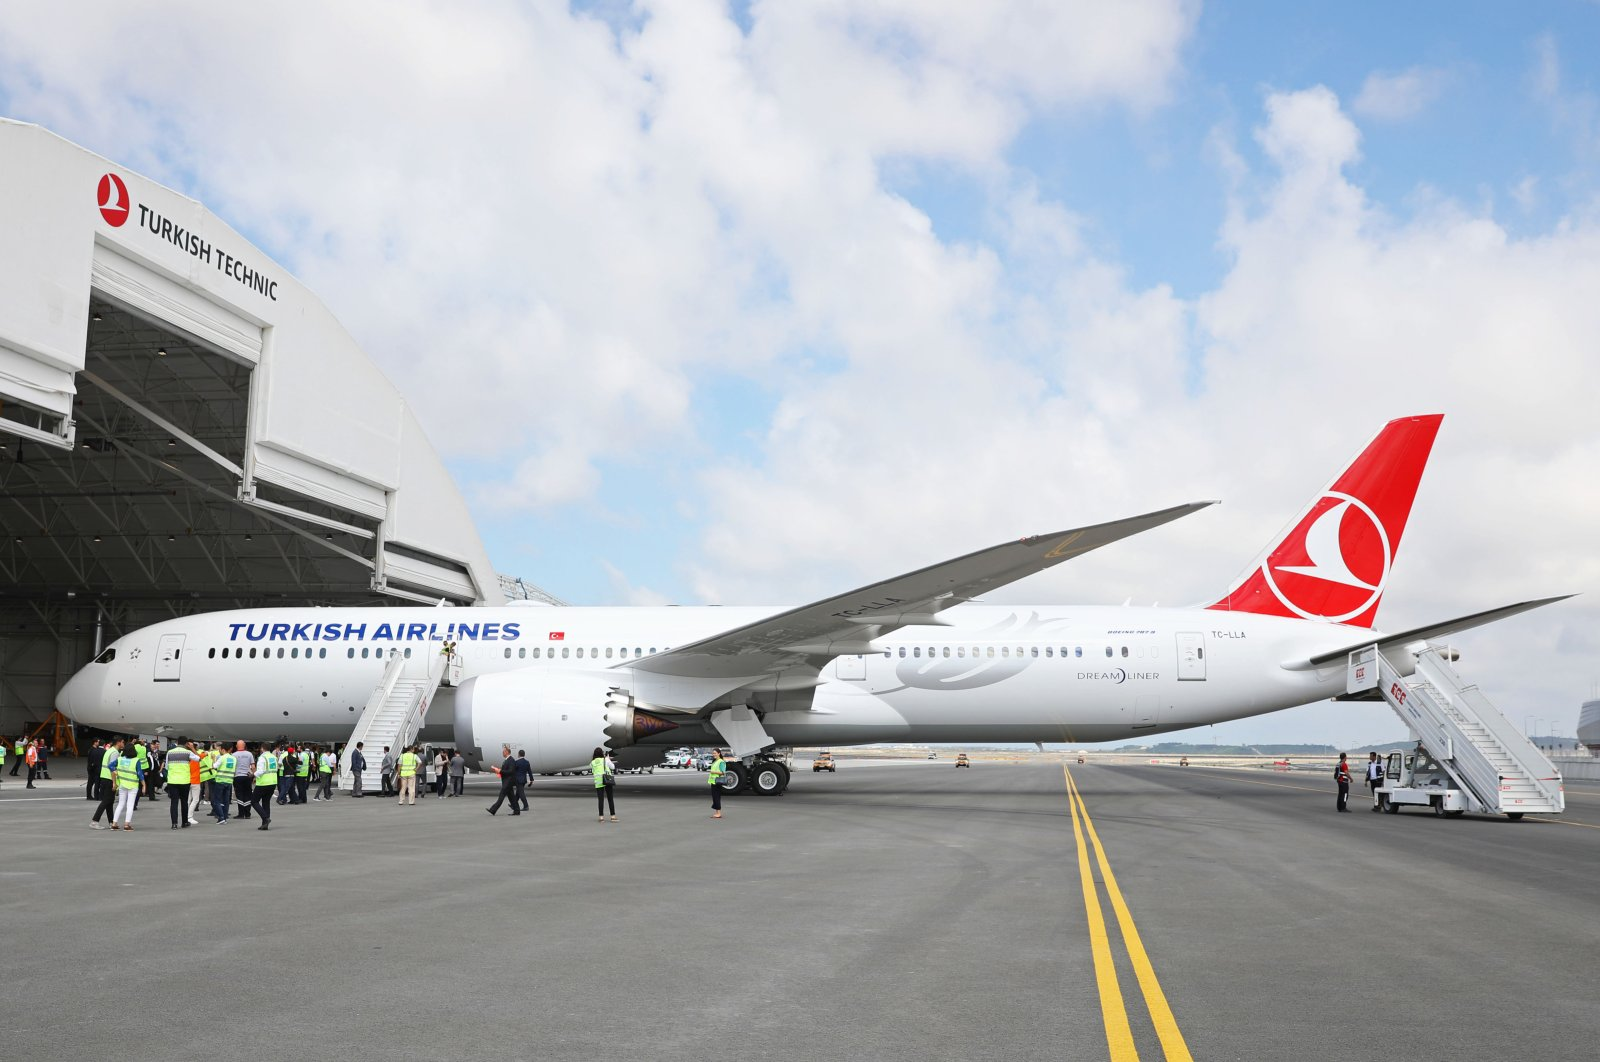 The first Boeing 787-9 Dreamliner long range passenger aircraft added to the fleet of Turkish Airlines stands on the tarmac at the Istanbul Airport prior to its maiden flight, on July 04,2019. (Photo: Sabah / Murat Şengül)